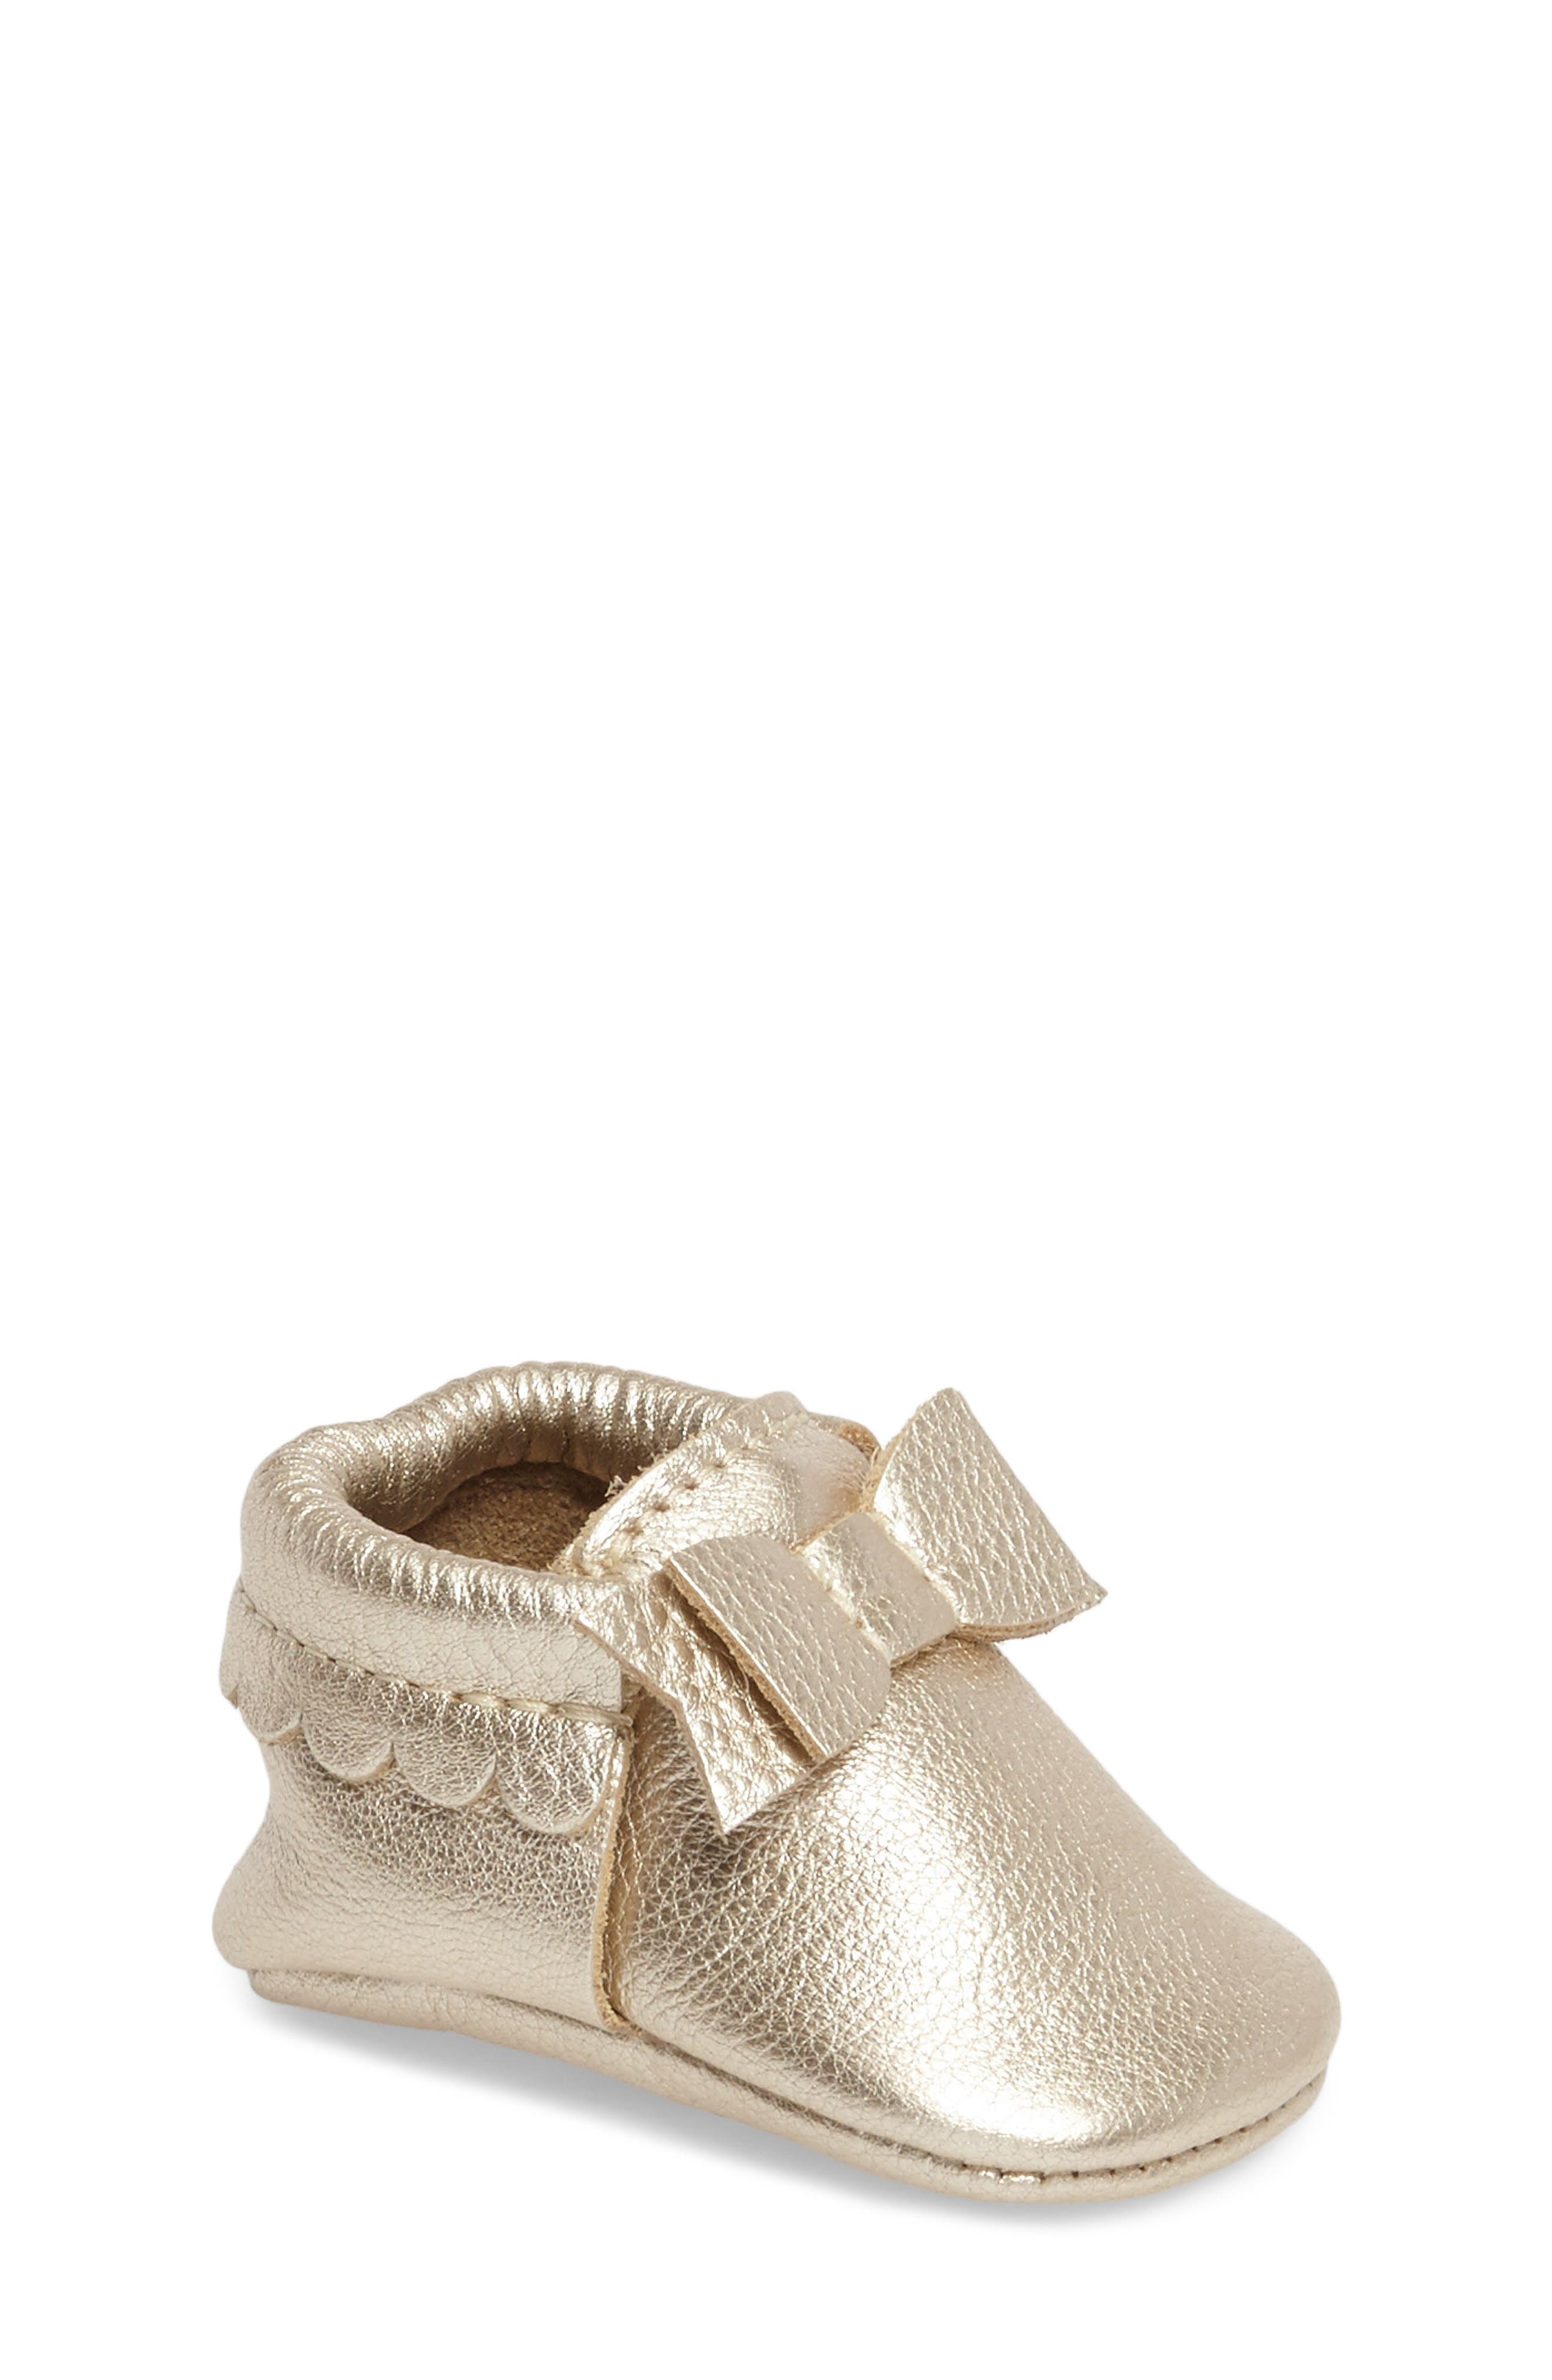 FRESHLY PICKED, Metallic Bow Moccasin, Main thumbnail 1, color, PLATINUM